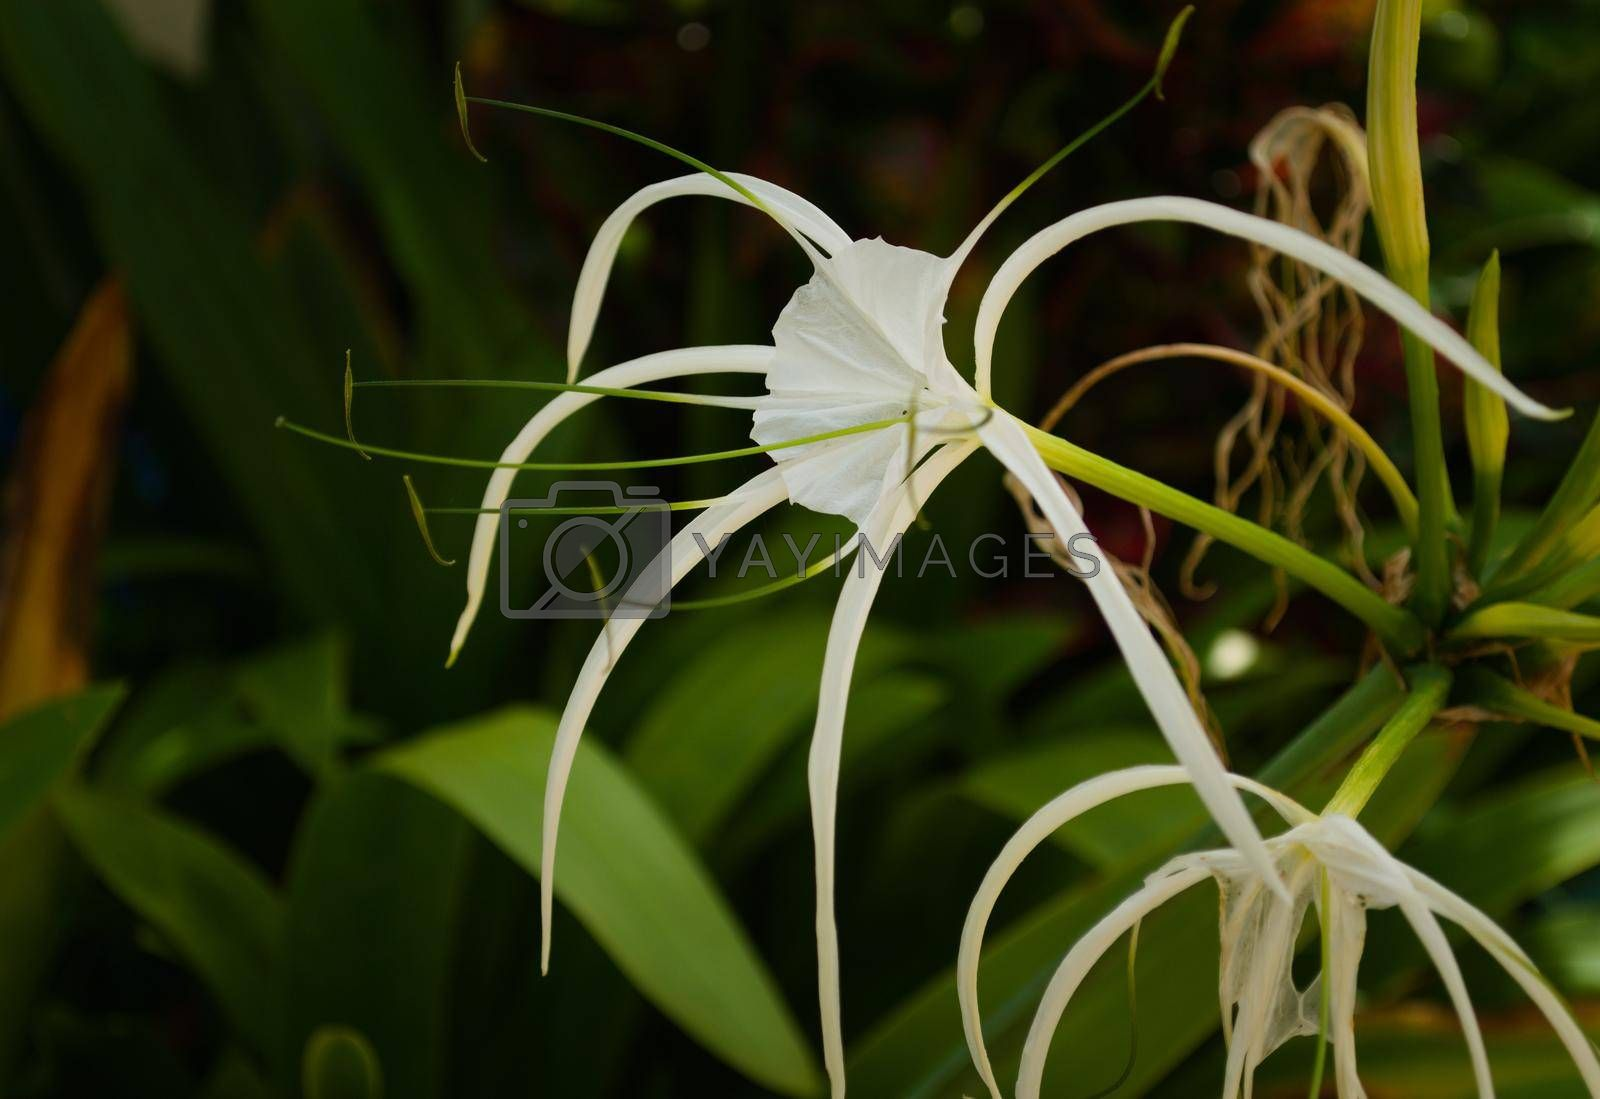 Royalty free image of Caribbean spider lily (Hymenocallis caribaea), close up of a specimen in a garden in Thailand. by hernan_hyper